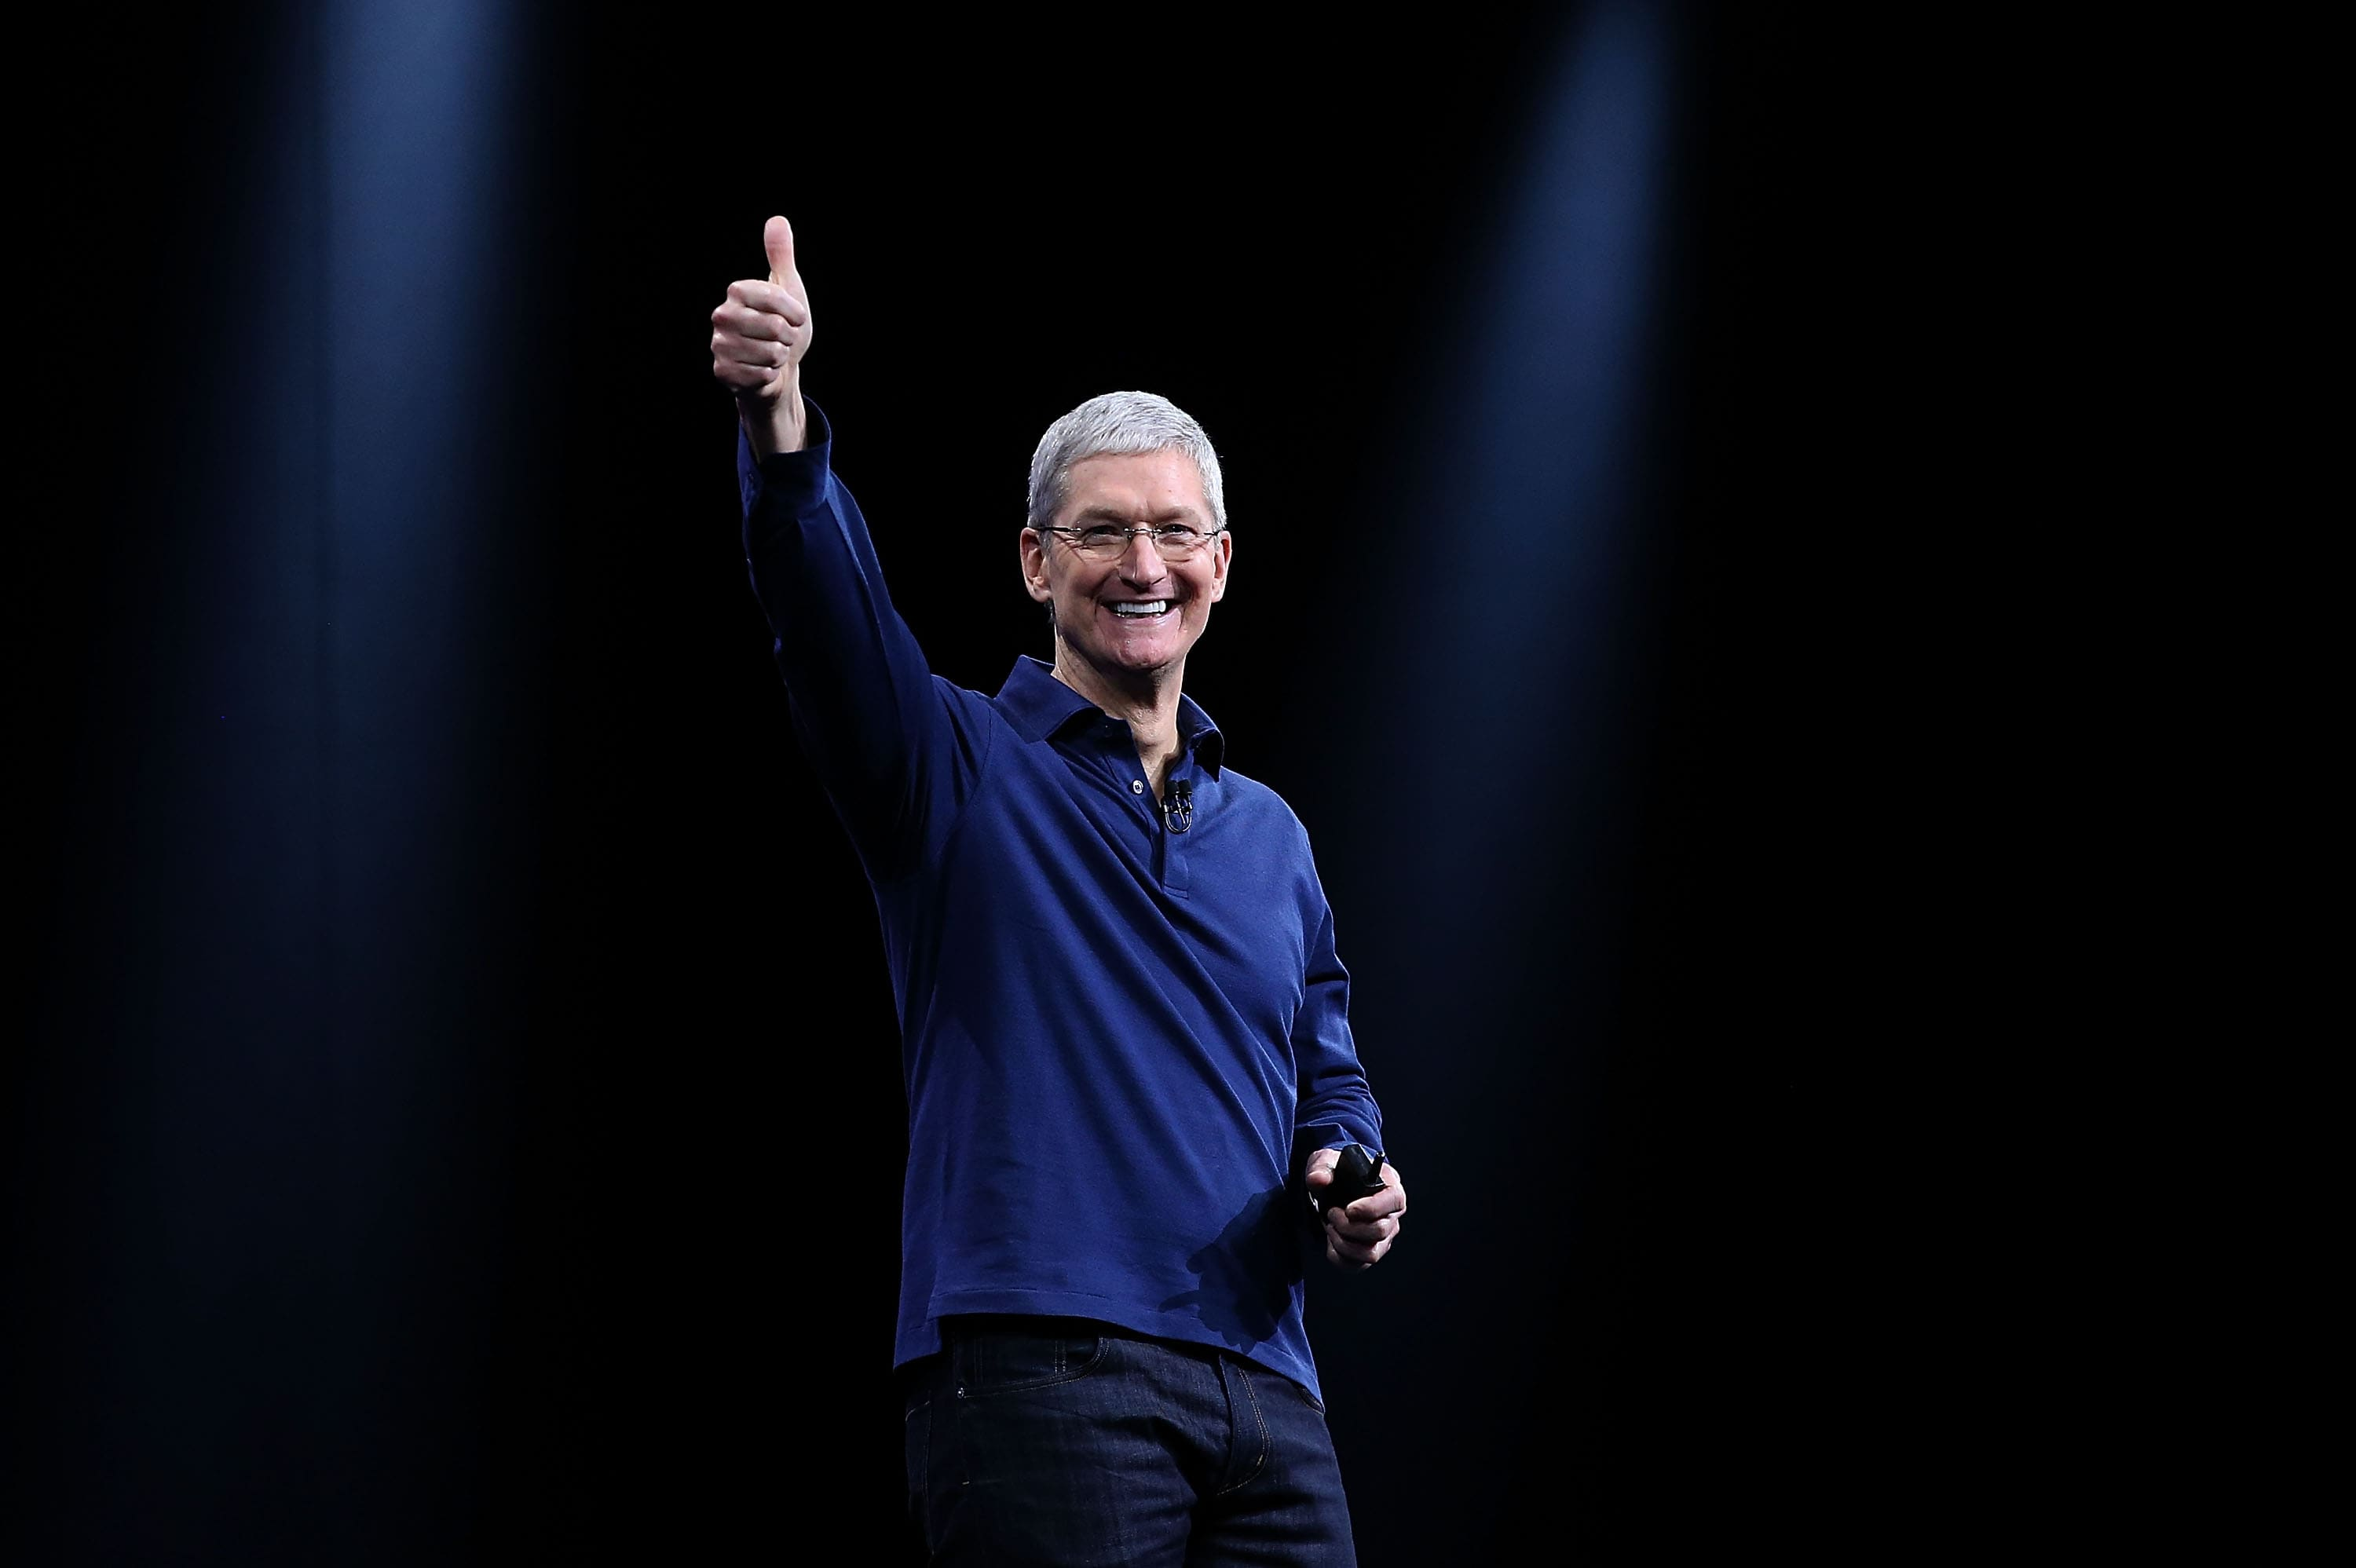 Apple is having its big annual event where it lays out plans for the coming year — here's what to expect